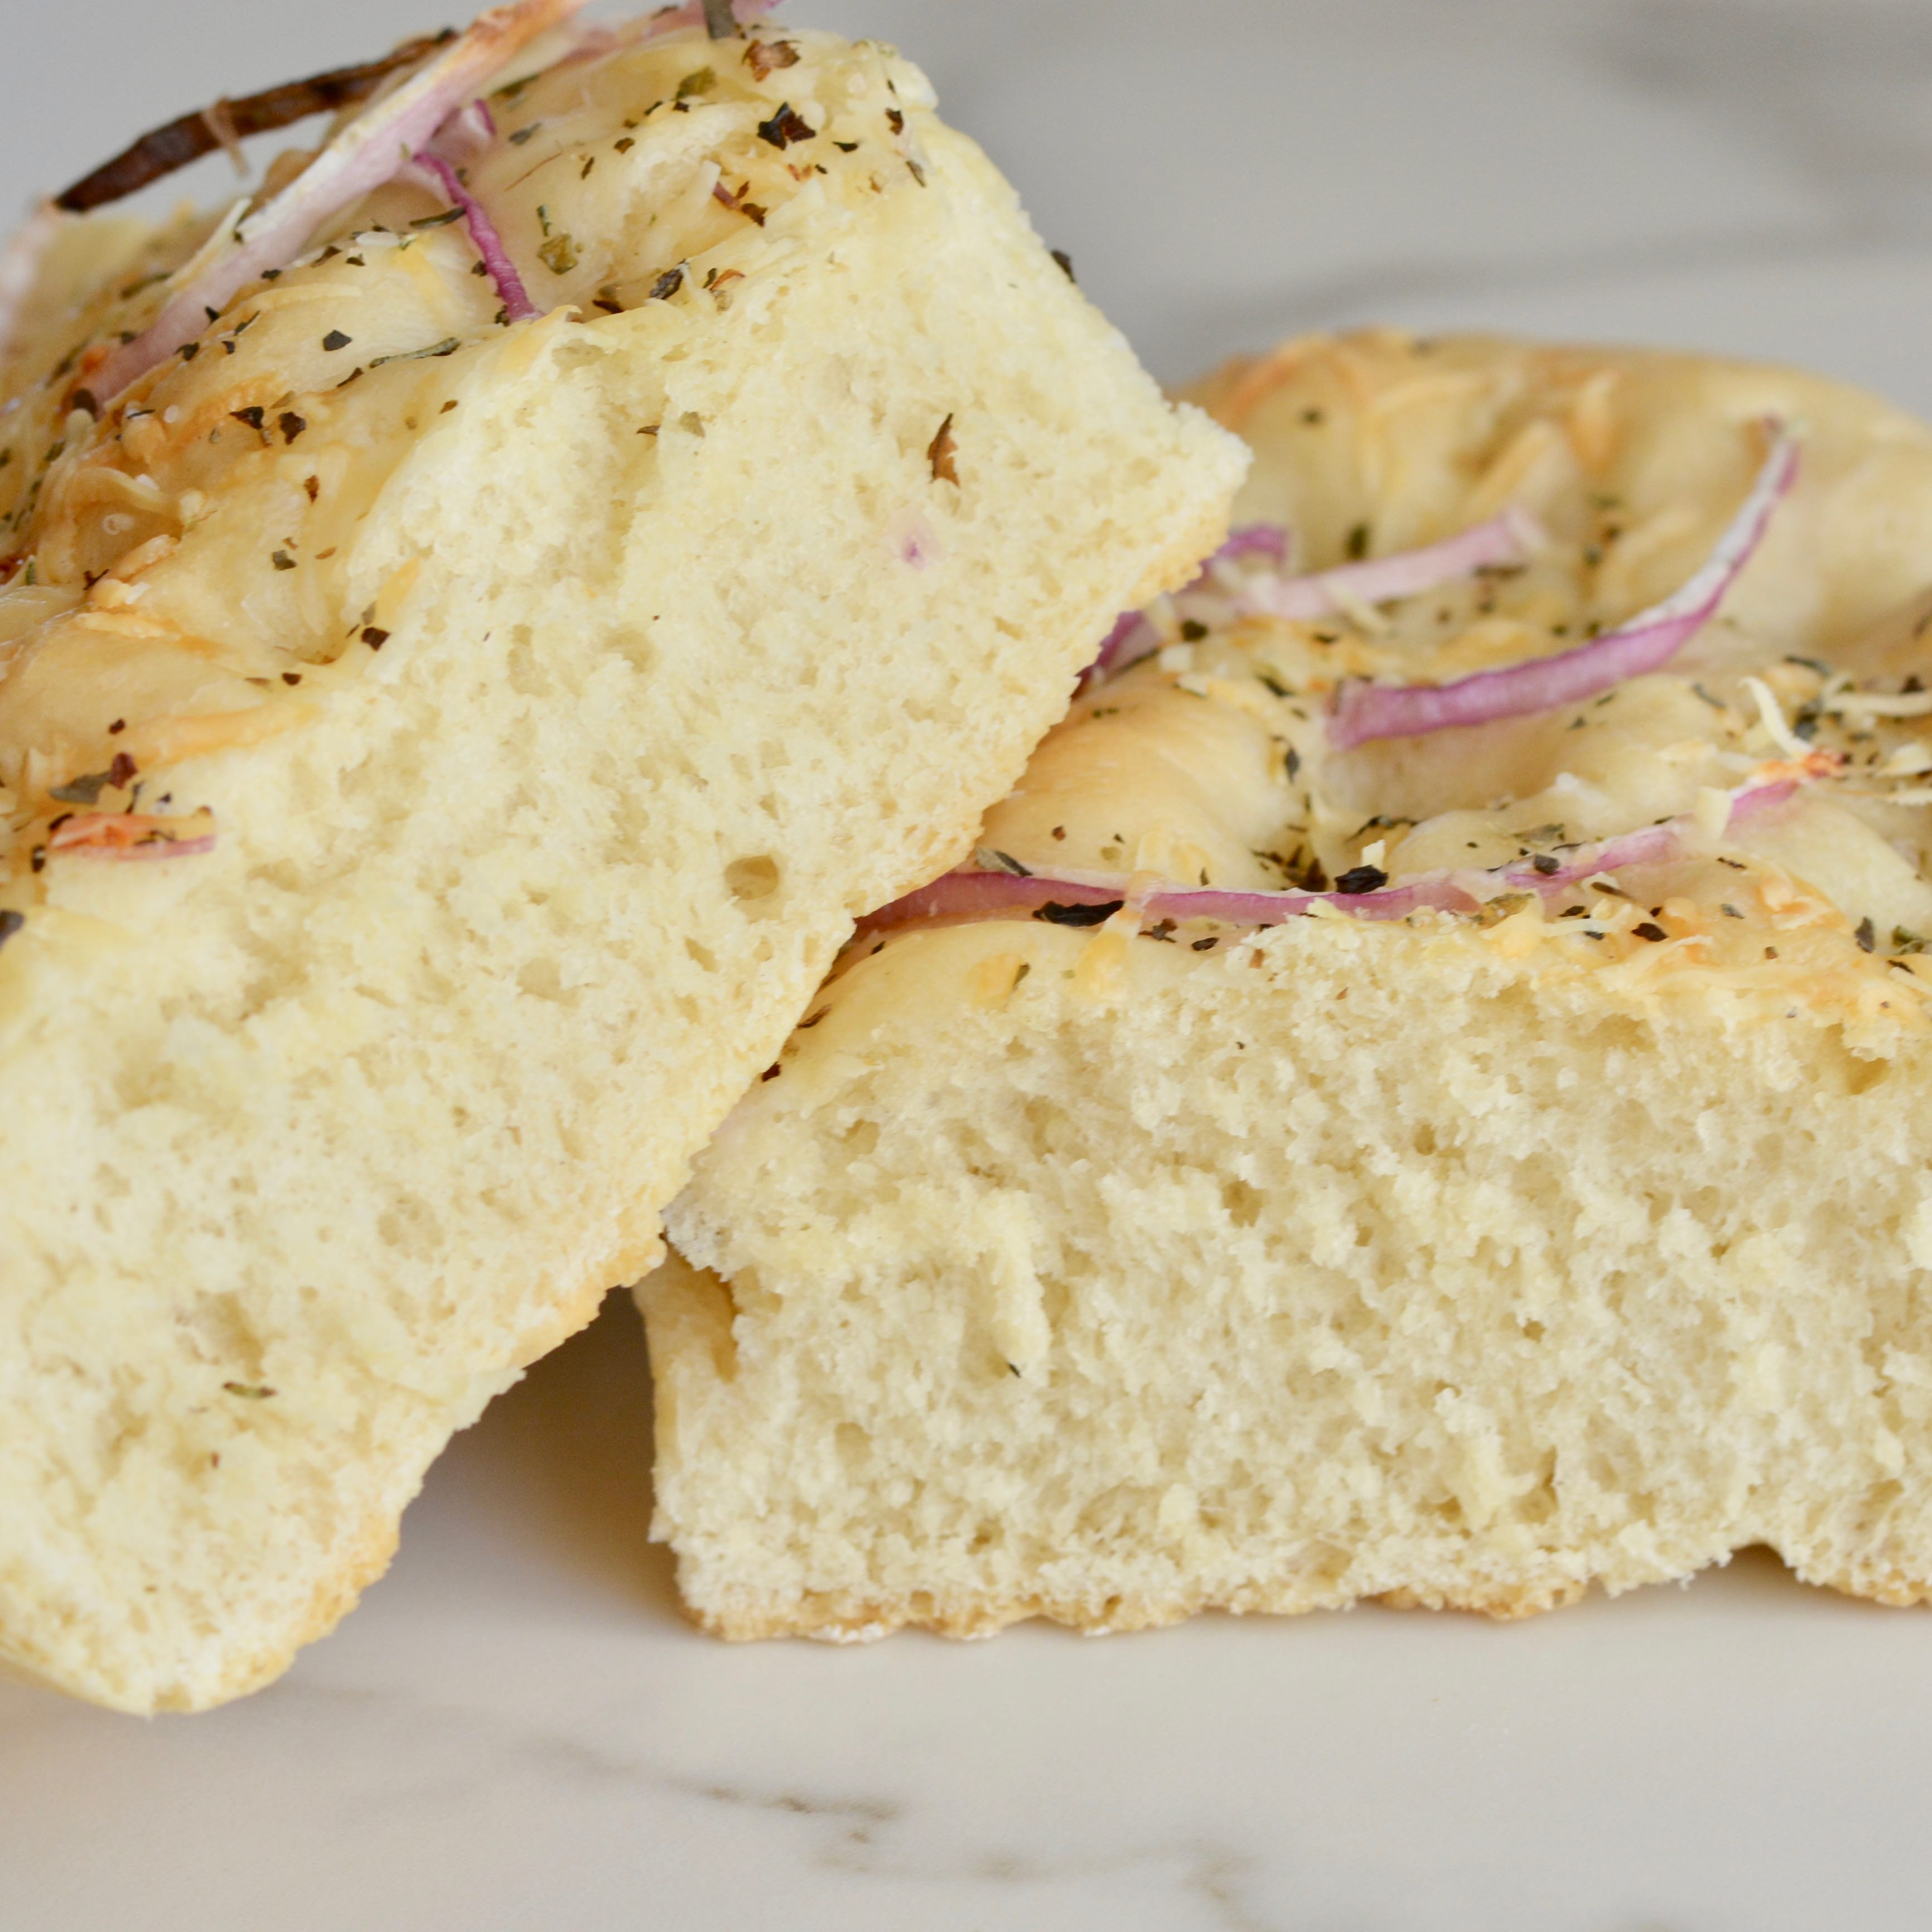 Easy focaccia bread, perfect for sandwiches or dipping in olive oil. This bread goes with every meal!